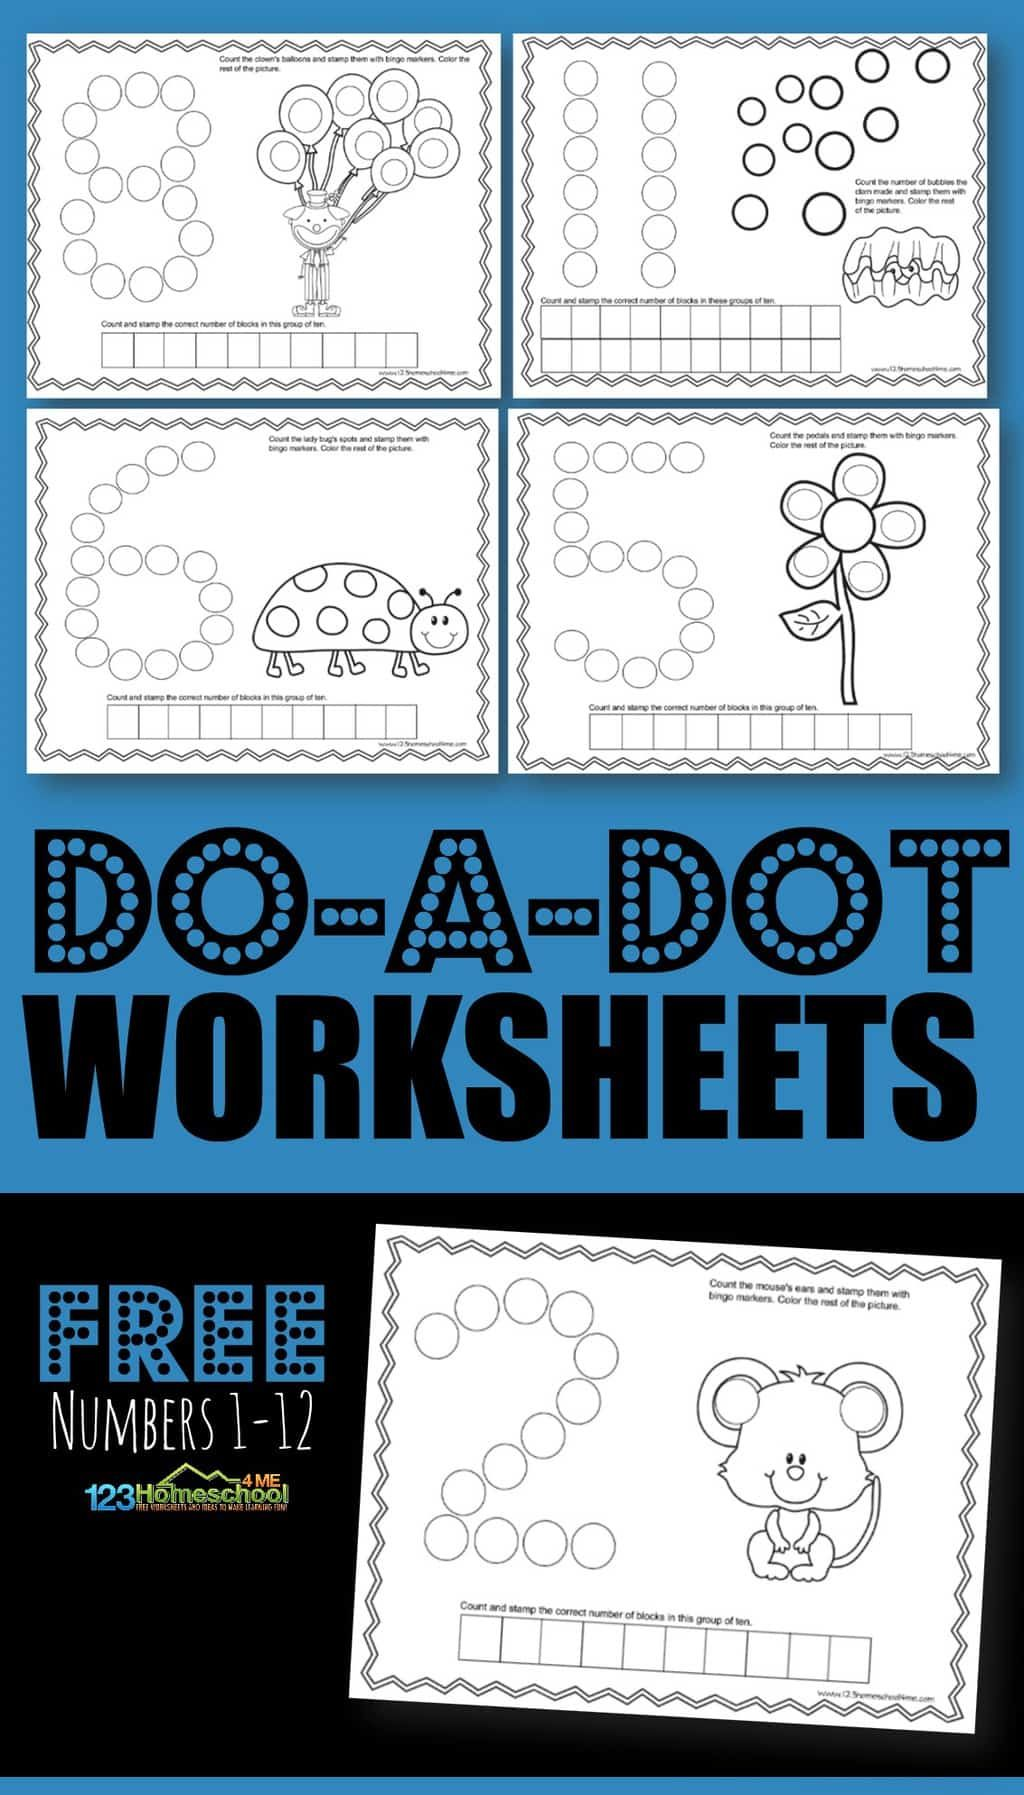 Do A Dot Worksheets Numbers 1 12